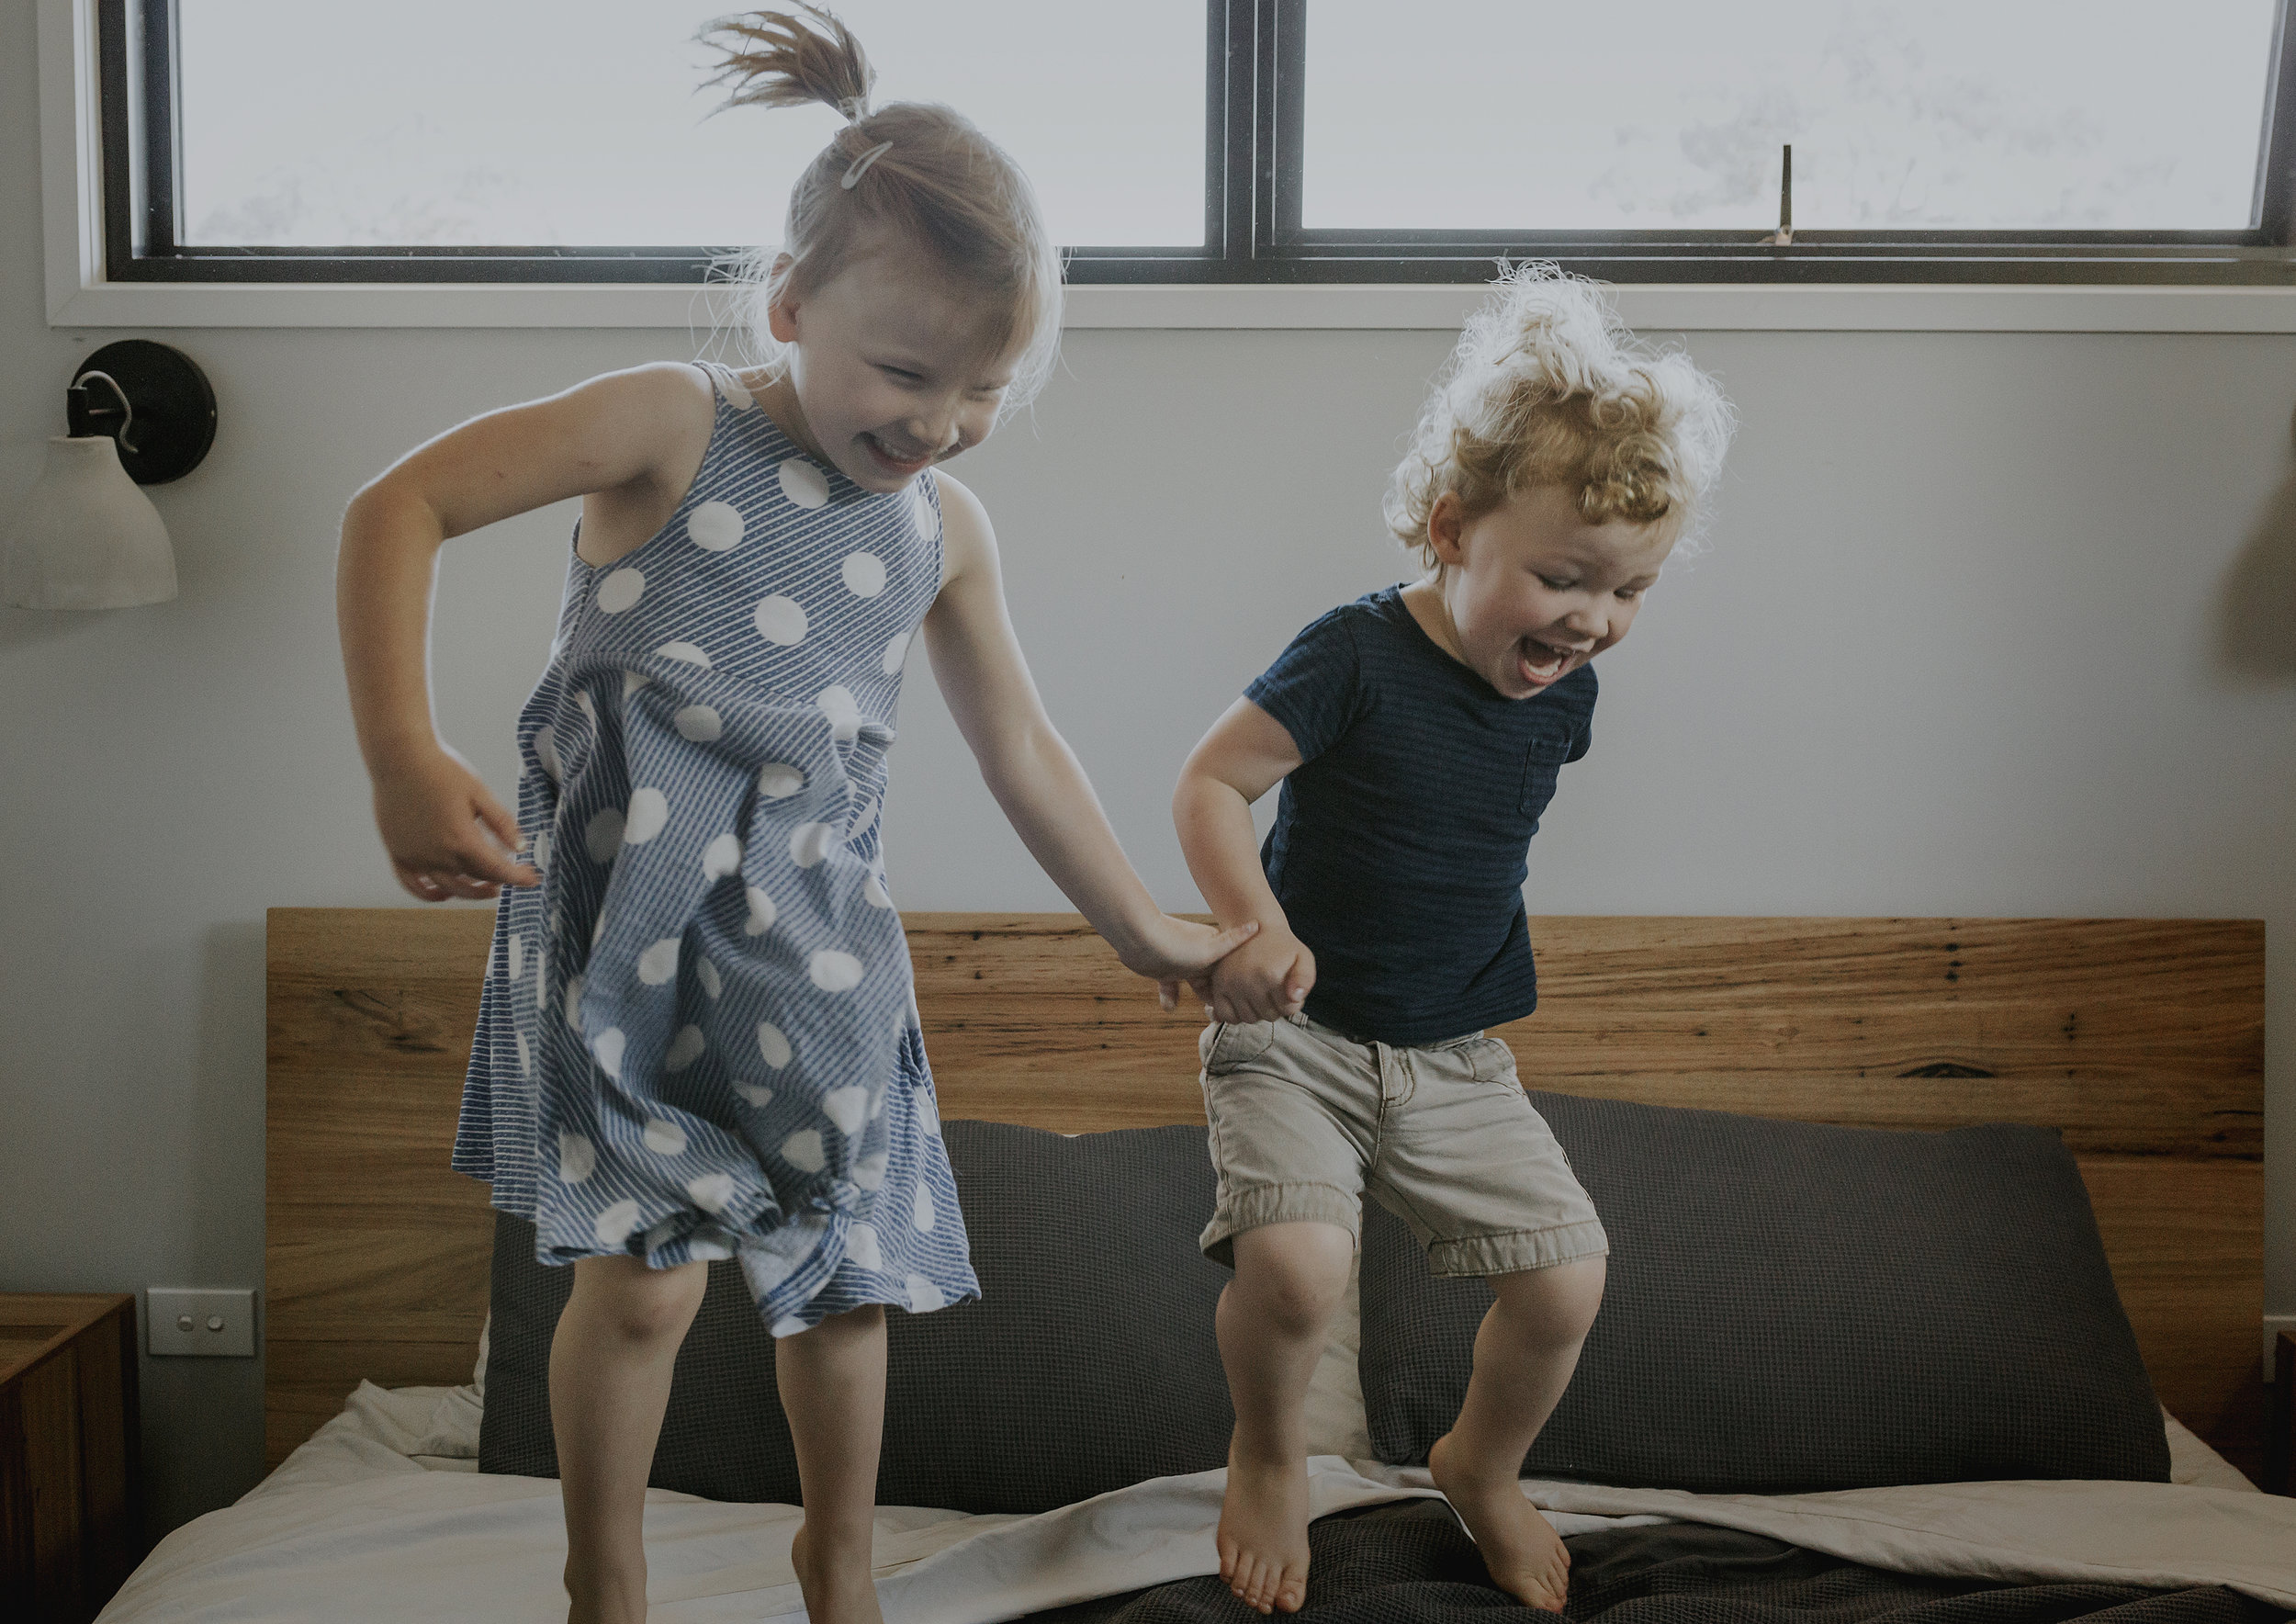 Children jumping on their parent's bed